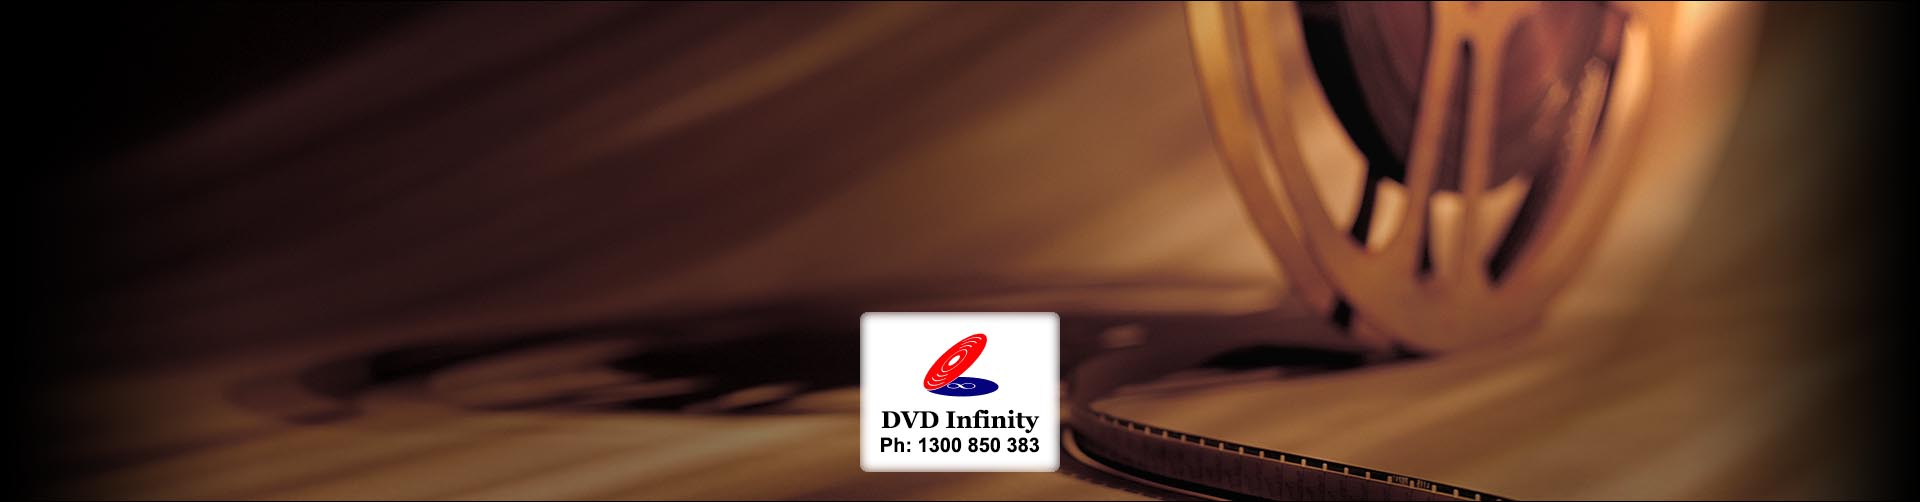 DVD Infinity | Super 8, Standard 8, 9 5mm and 16mm Transfer